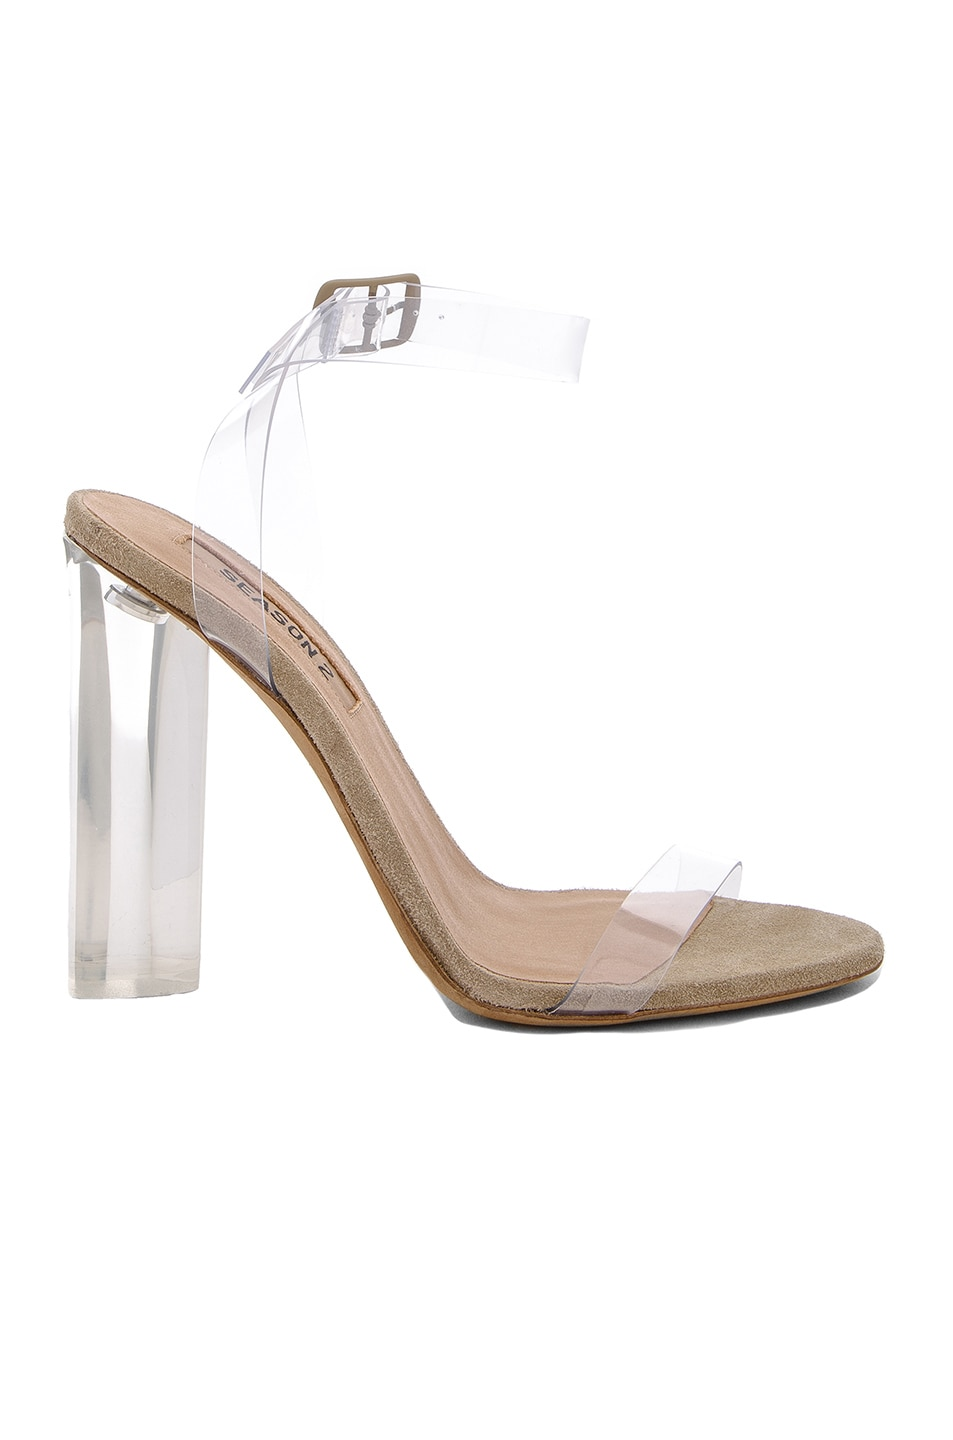 Image 1 of YEEZY Season 2 Heels in Lucite